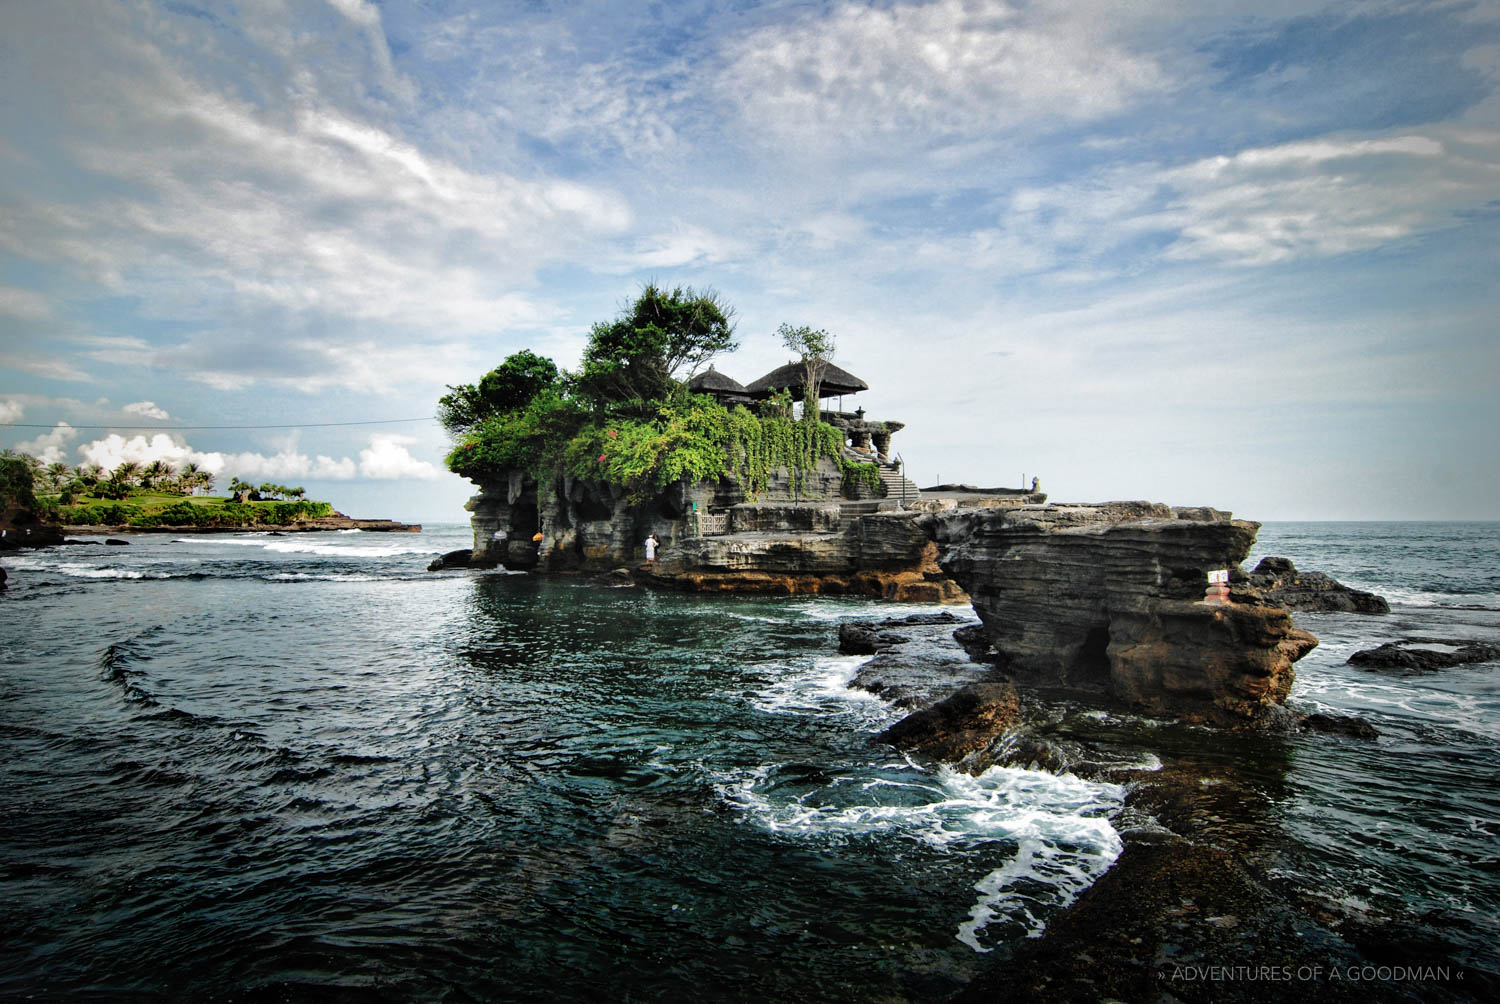 Tanah_Lot-Hindu_Temple-Bali_Indonesia-Greg_Goodman-AdventuresofaGoodMan-2-min.jpg